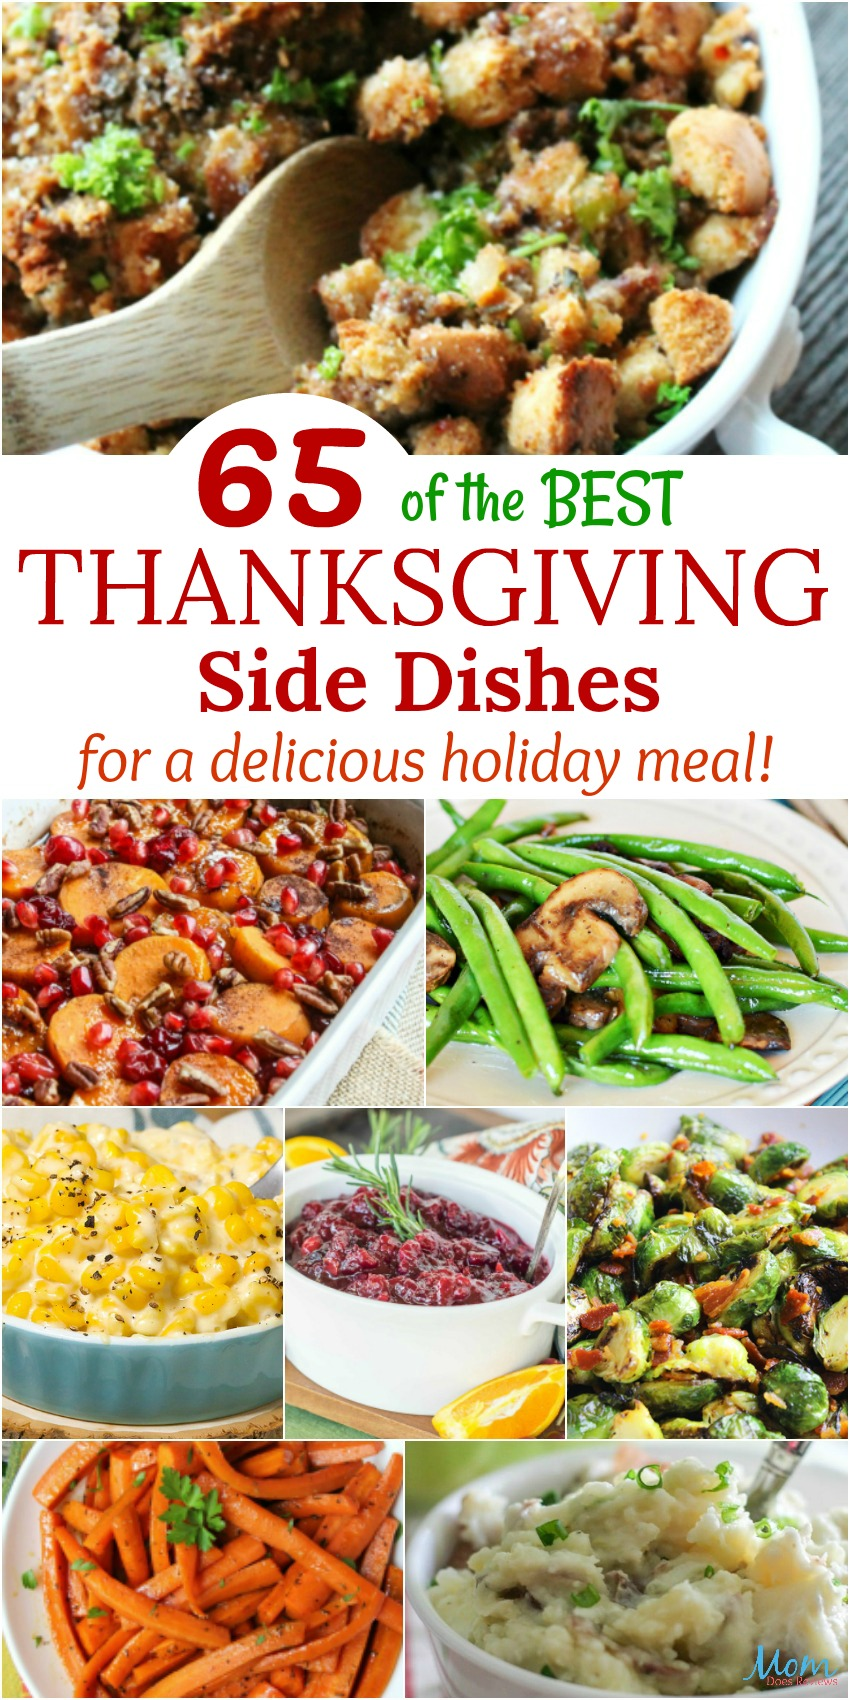 65 Best Thanksgiving Side Dishes for a Delicious Holiday Meal